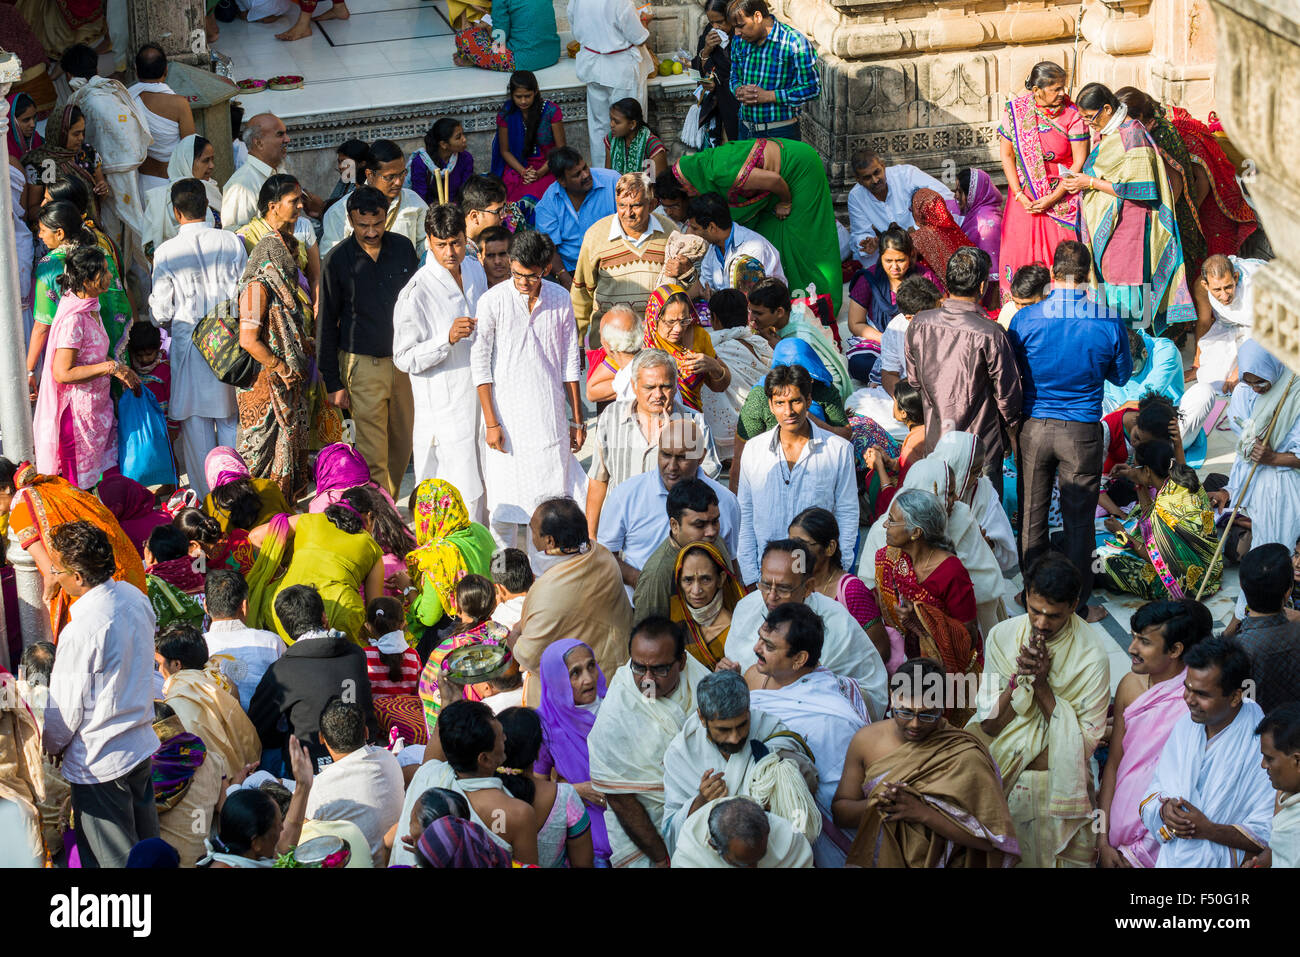 Thousands of Jain pilgrims are visiting Shatrunjaya hill, one of the major pilgrim sites for Jains, at the day of Stock Photo